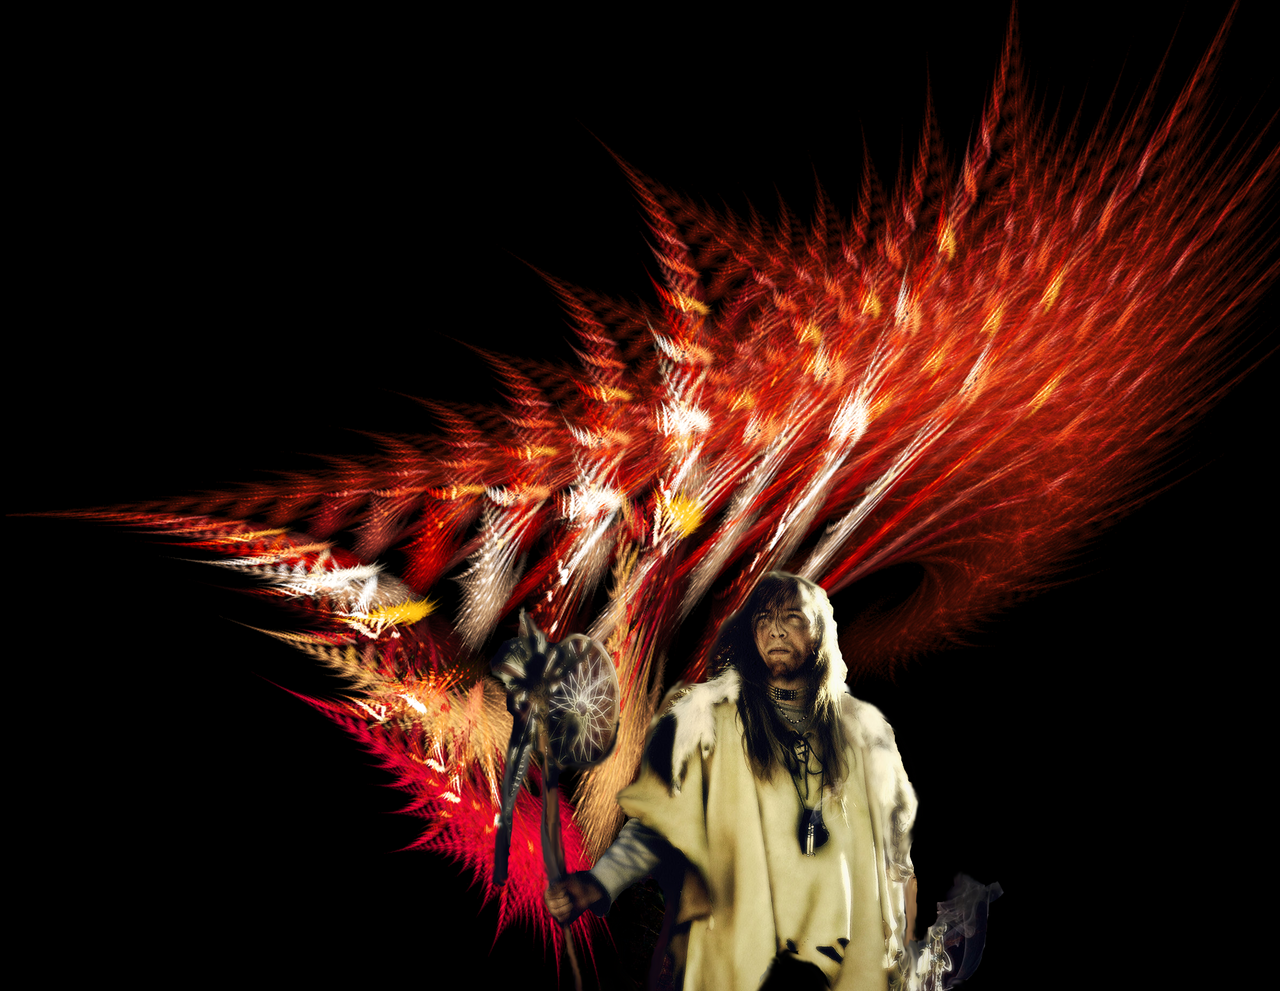 Red Indian Feathers FM by Kazytc on DeviantArt